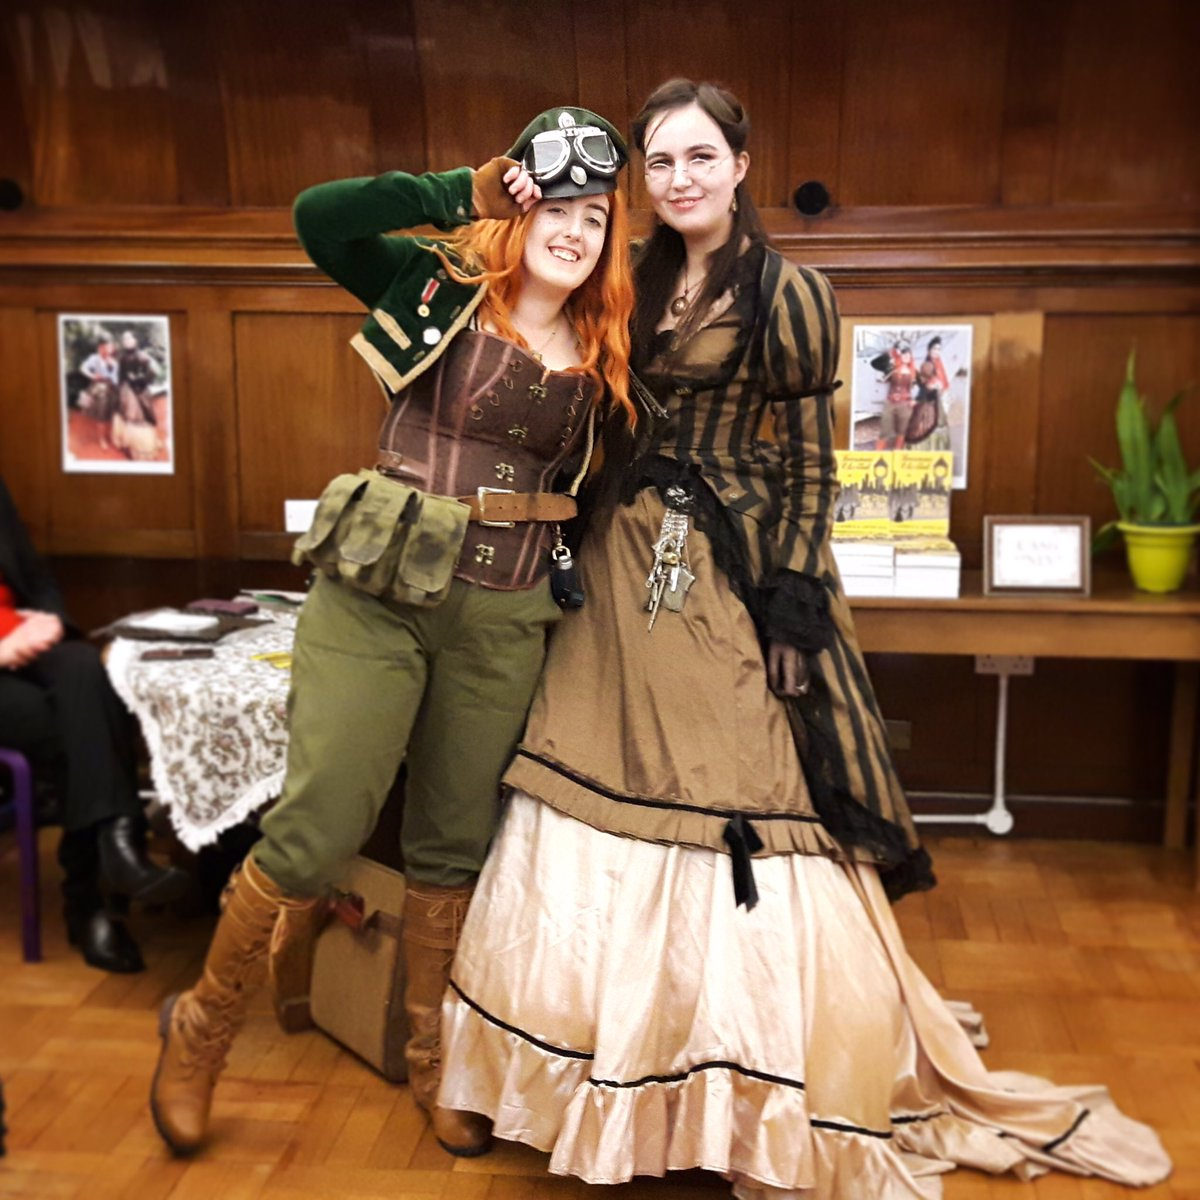 Little throwback to our authors' event at @dudleylibraries just over a week ago! Still very happy with how it went and the feedback has been amazing. We can't wait to do more with them in the future! ✈️☕️📚  #Steampunk #SteampunkBook #CoAuthors #WritingCommunity #GoodMysteryGirls